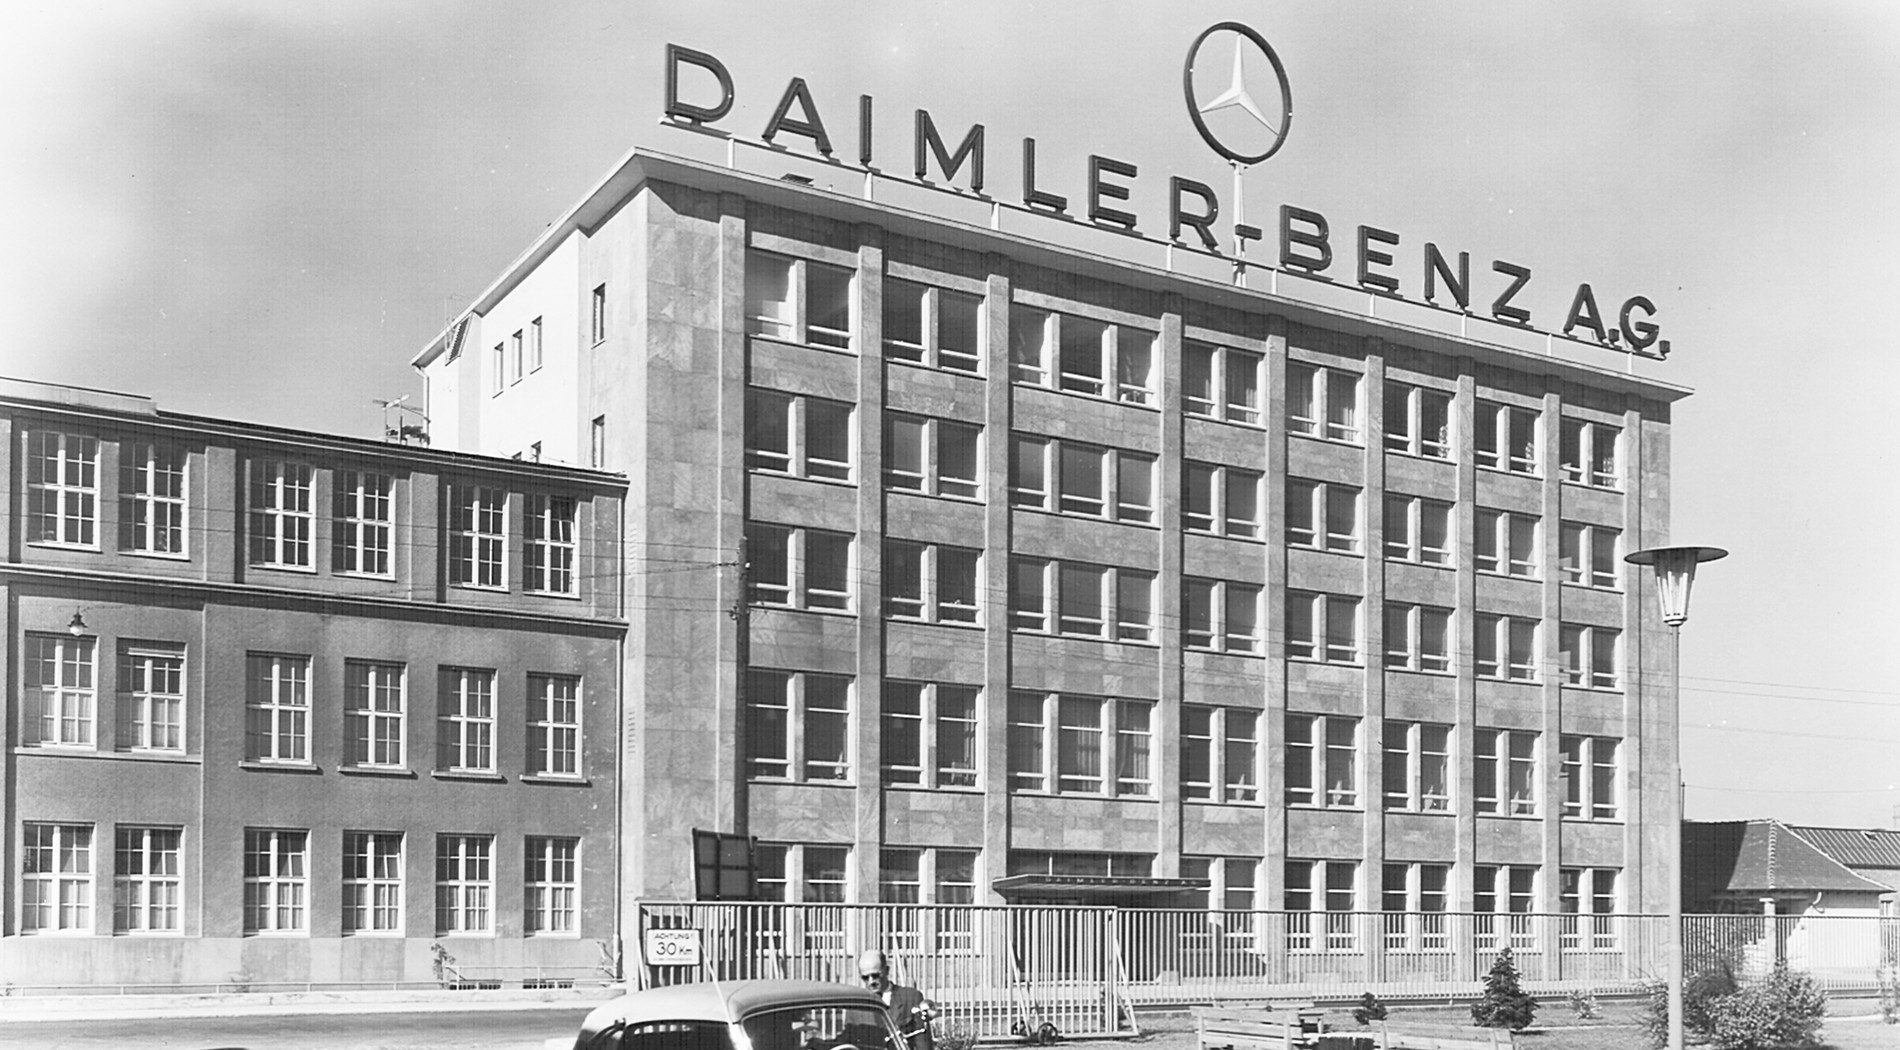 Project: Daimler Benz AG in Stuttgart